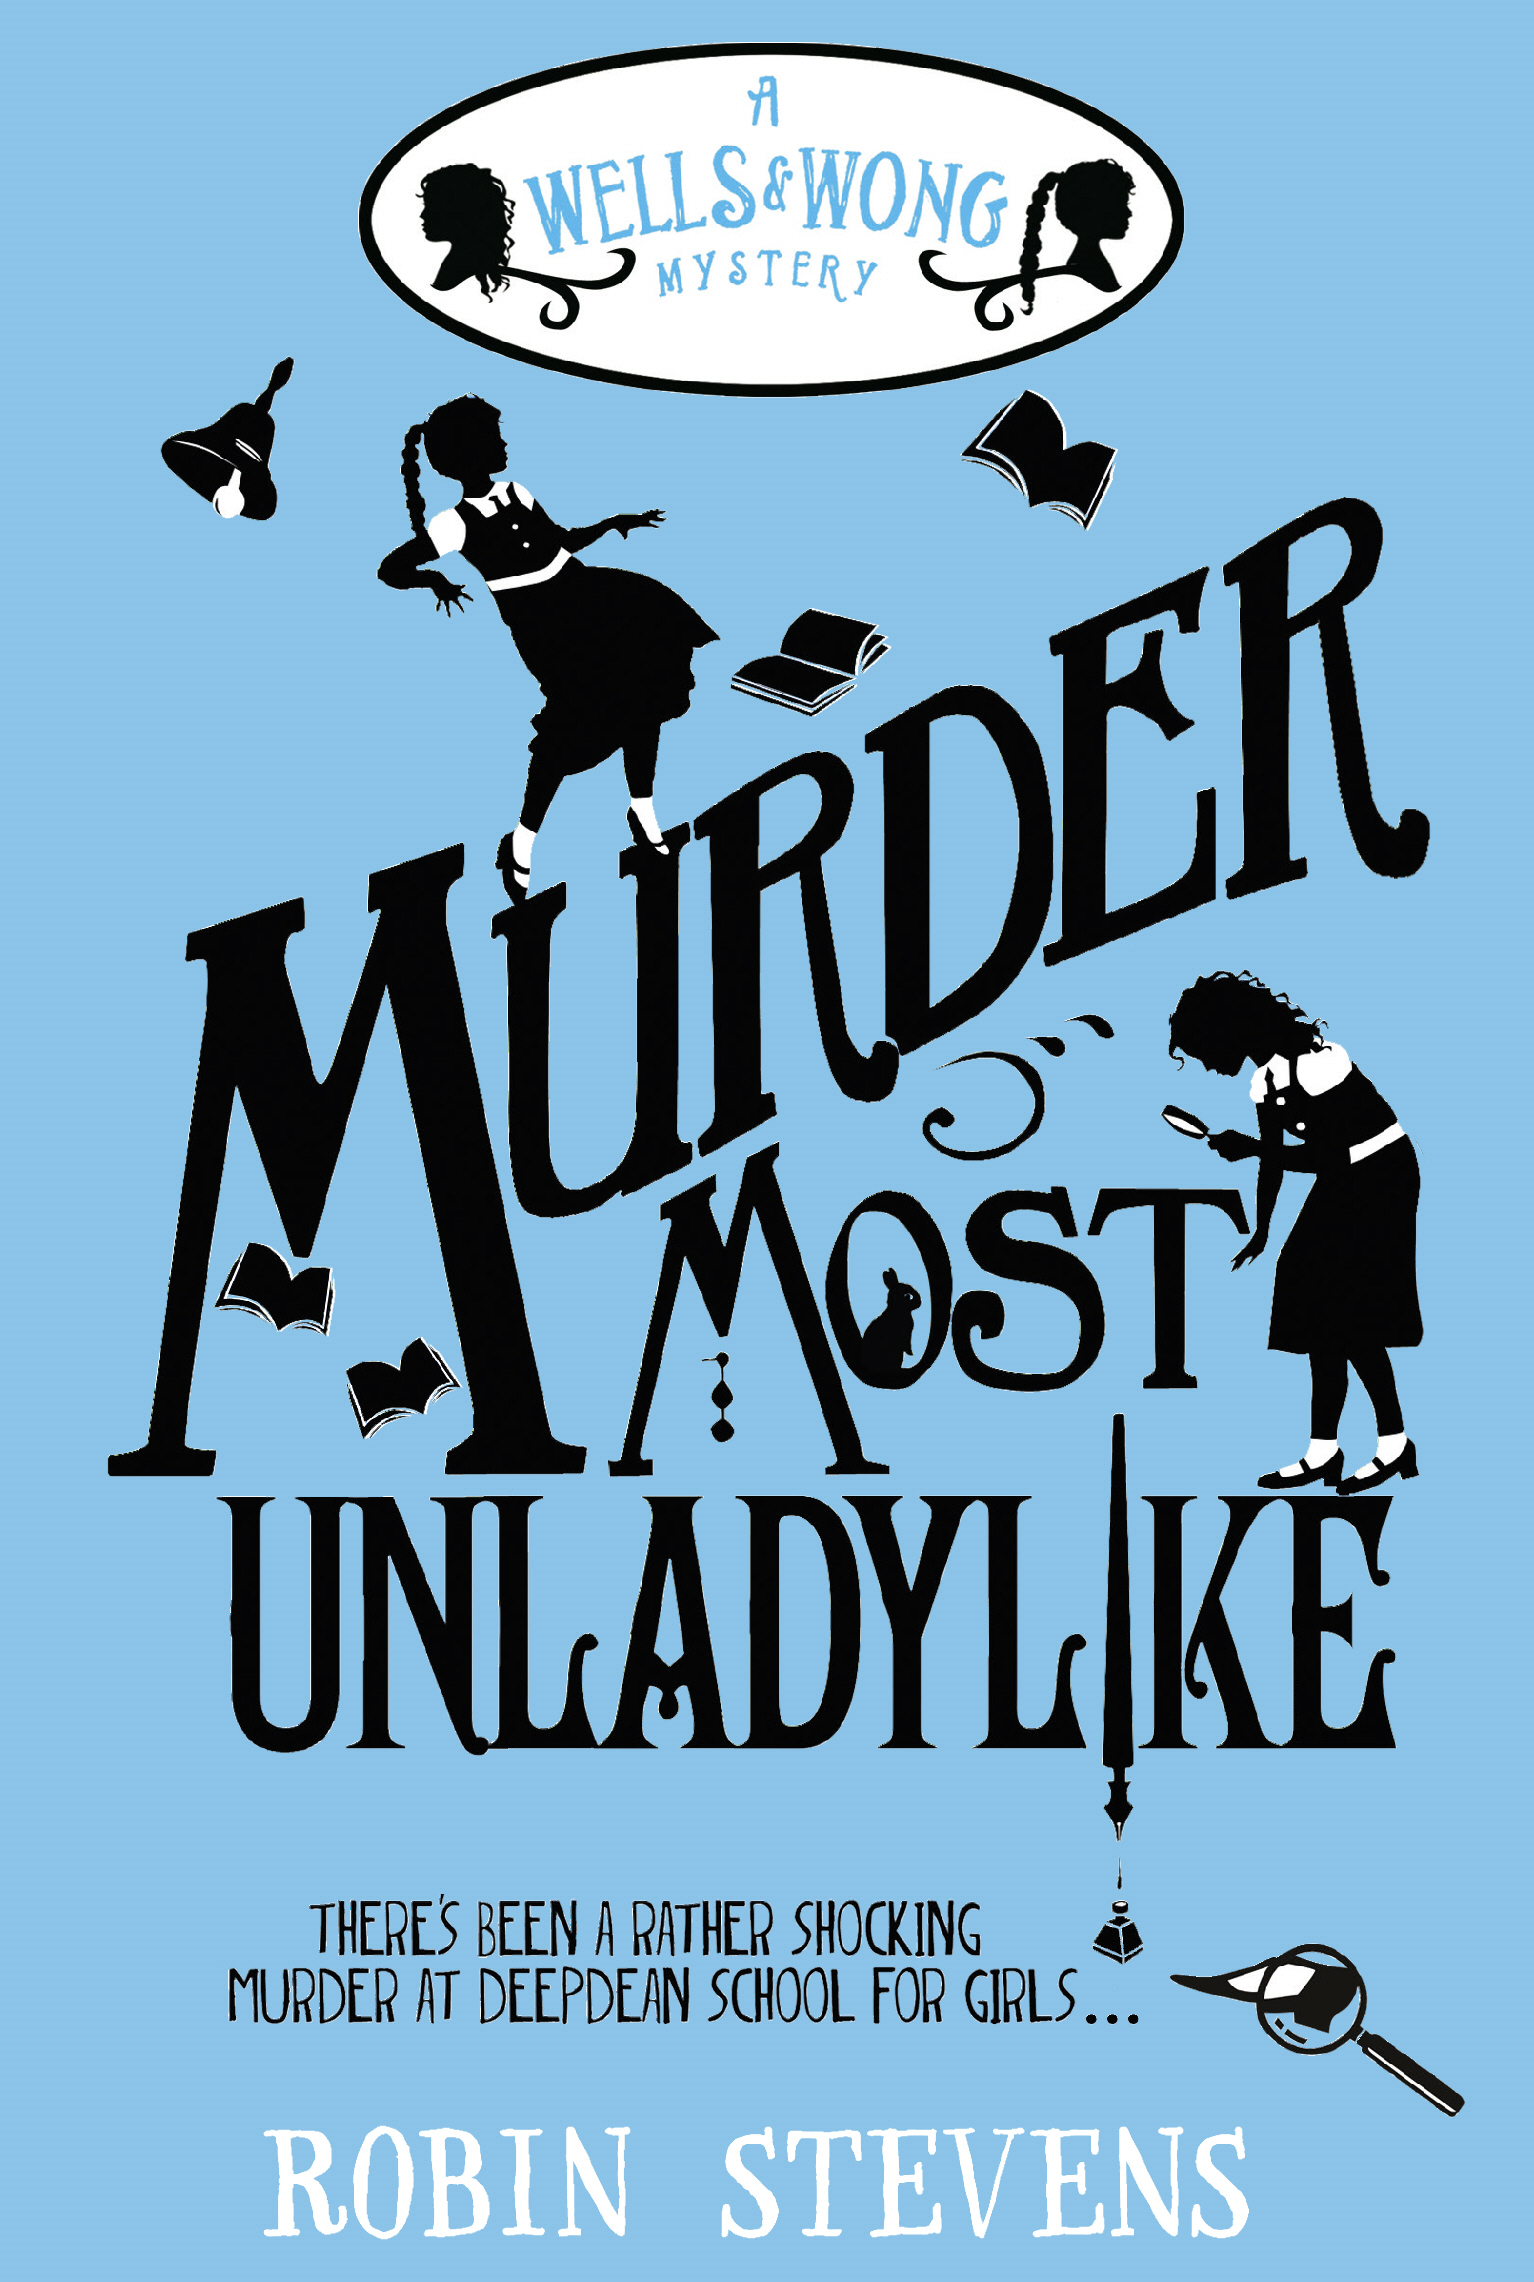 Murder Most Unladylike A Wells and Wong Mystery